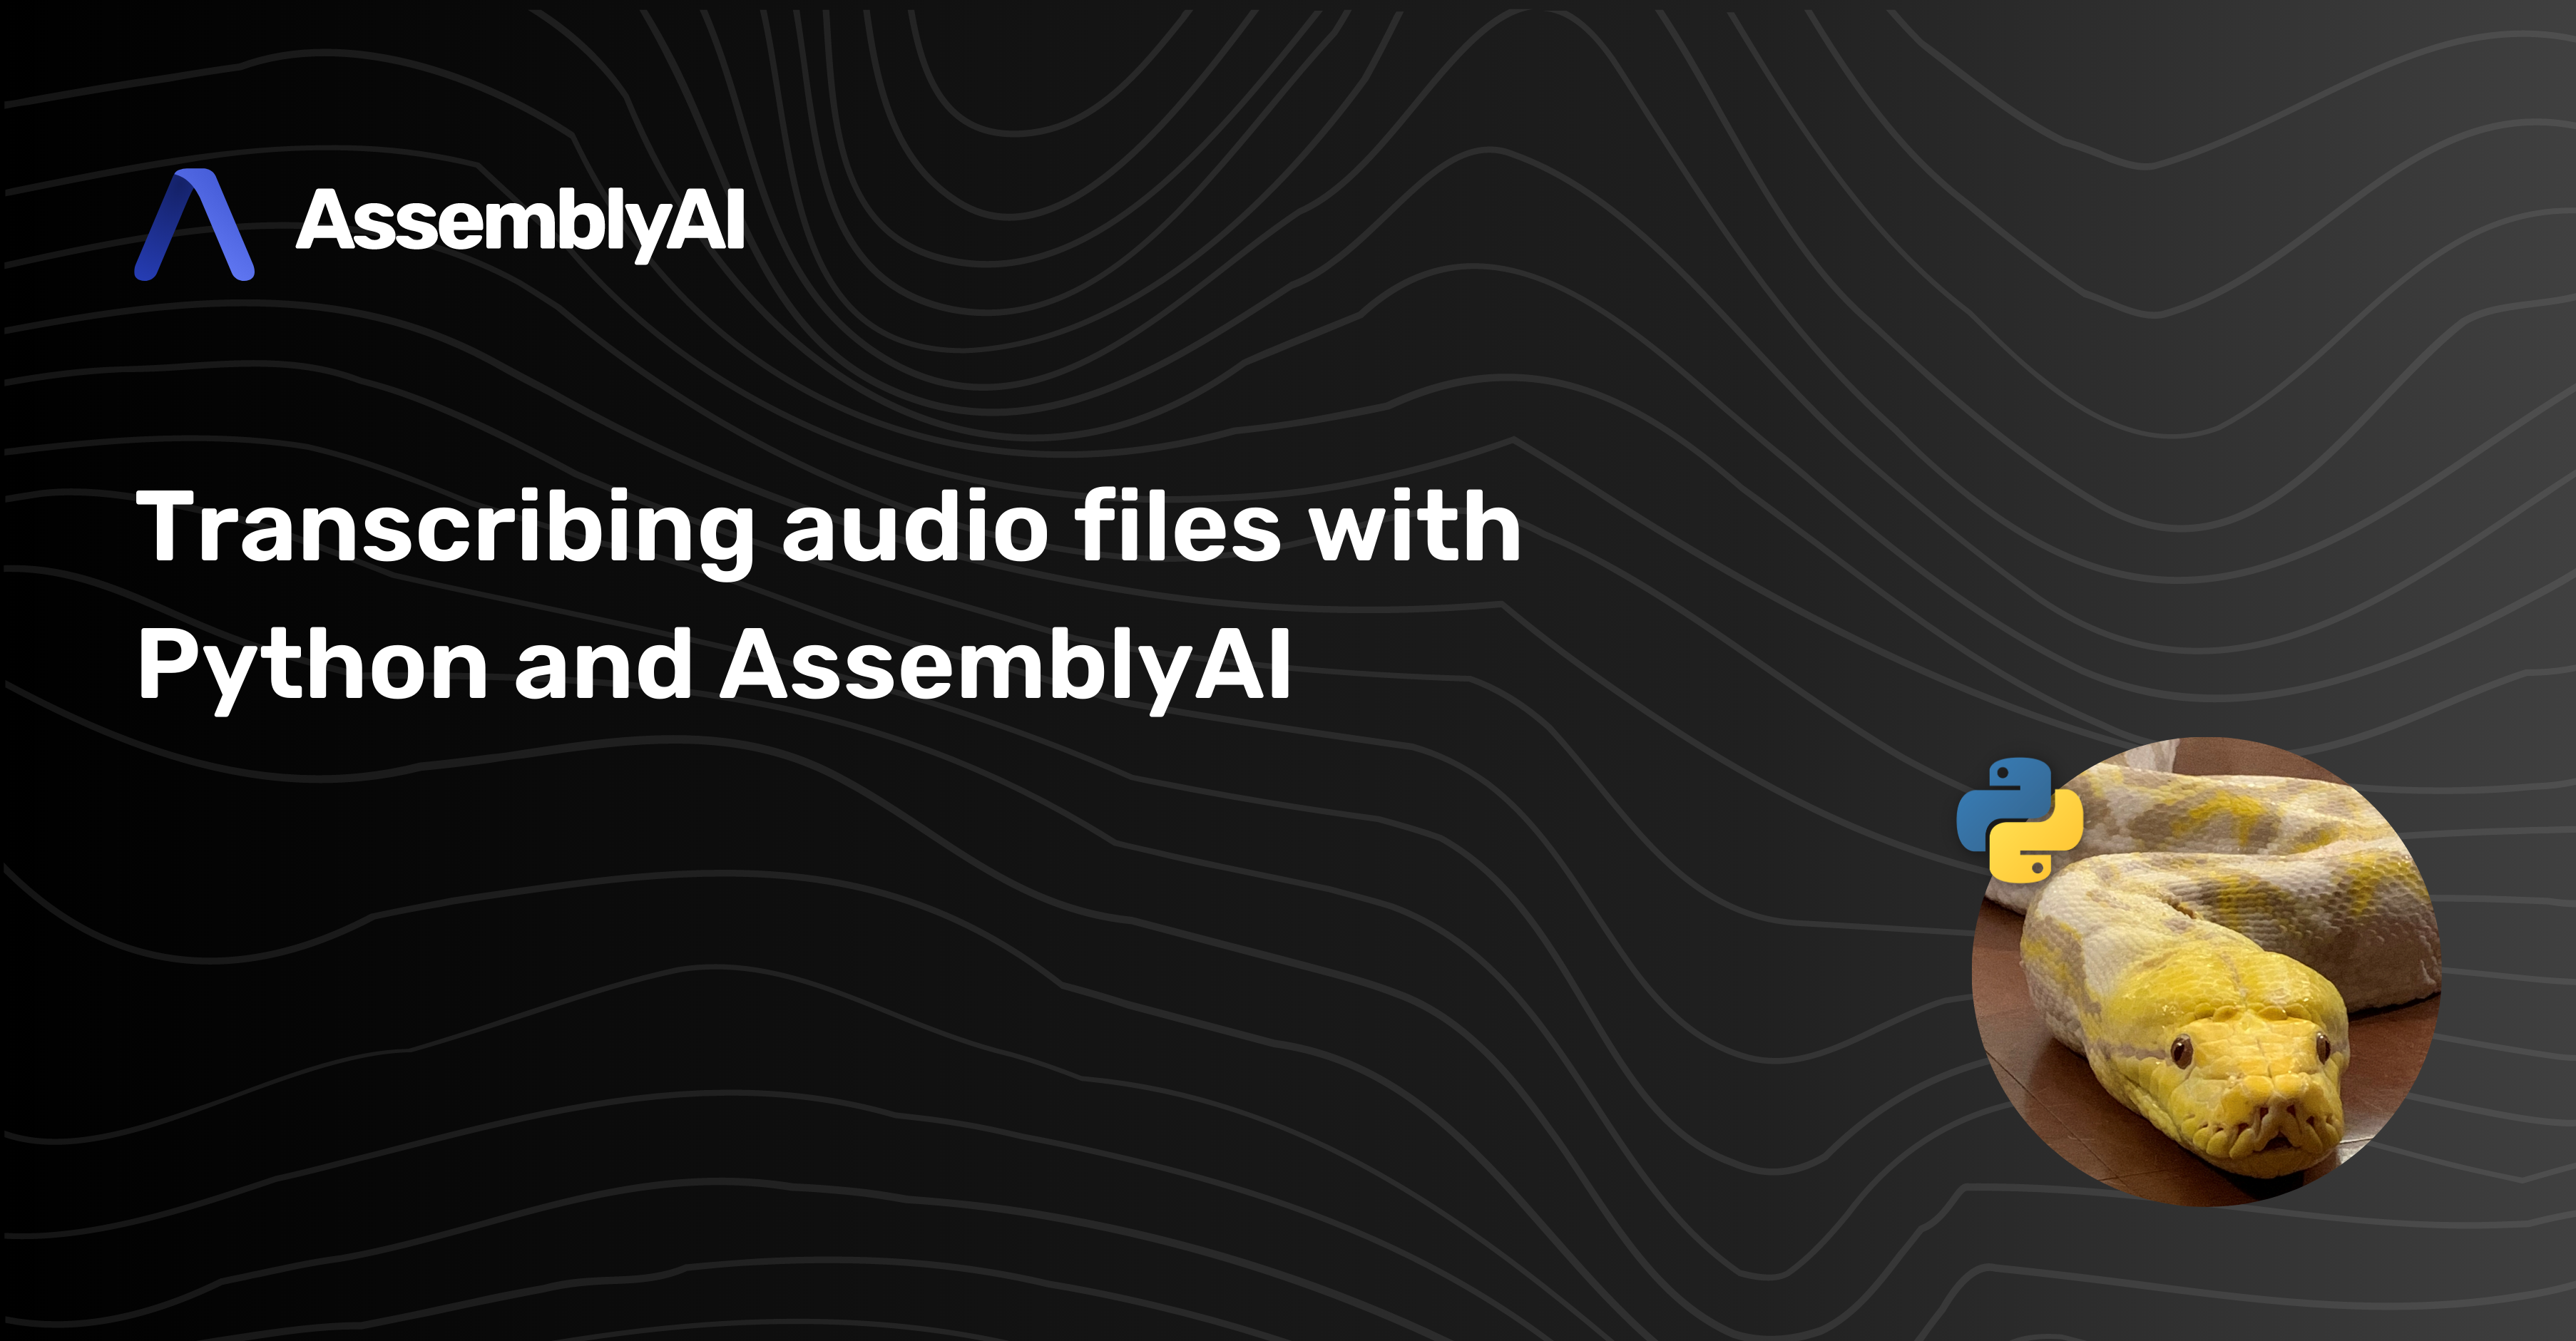 How to transcribe an audio file with Python and AssemblyAI